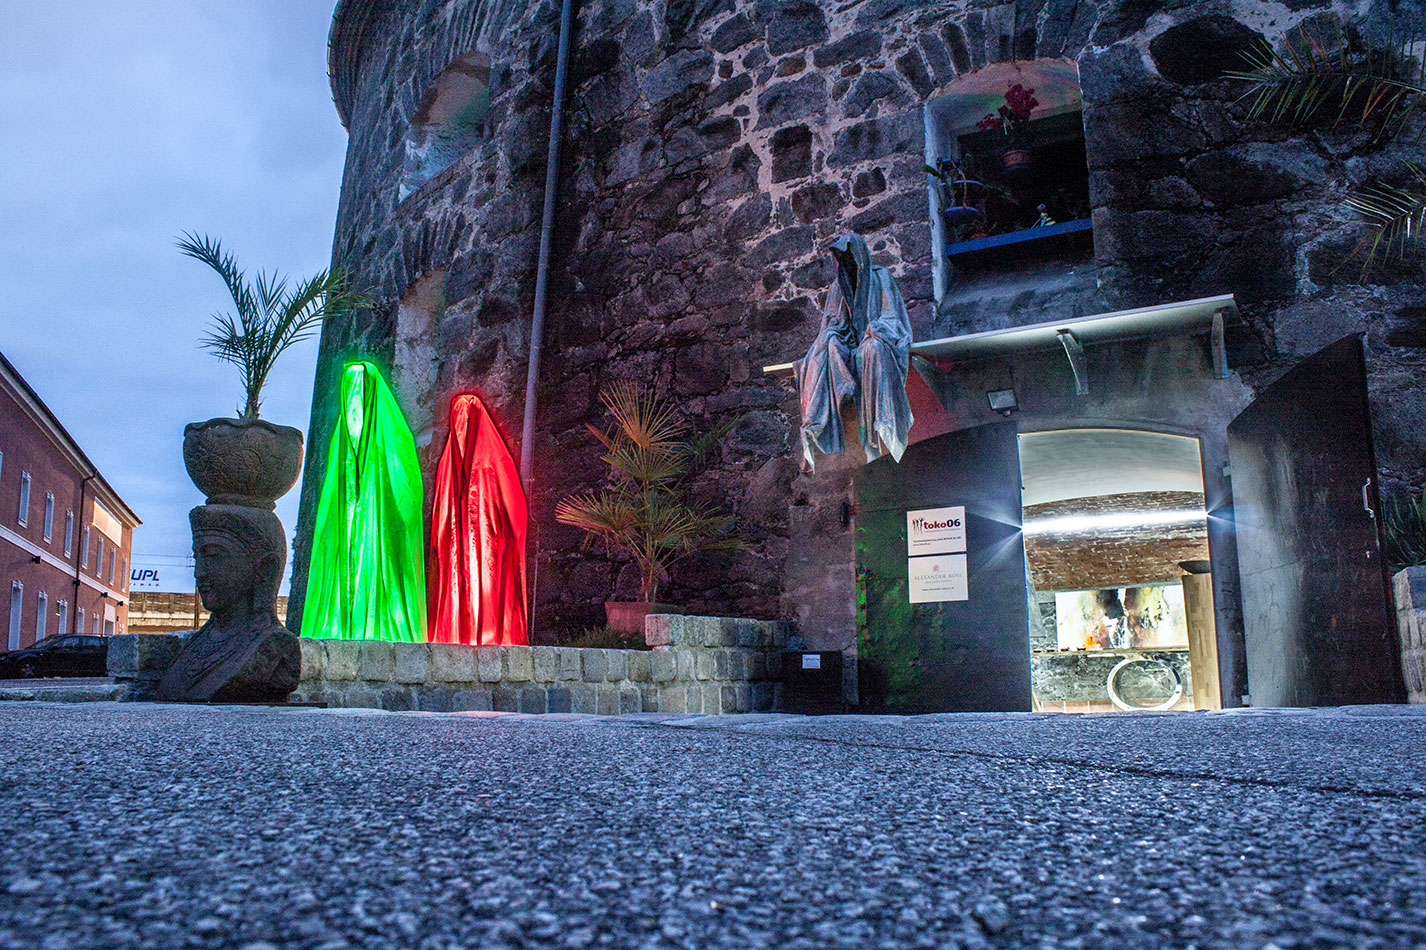 mobile-galerie-gall-toko06-linz-25er-turm-guardians-of-time-manfred-kielnhofer-contemporary-fine-art-design-sculpture-2646